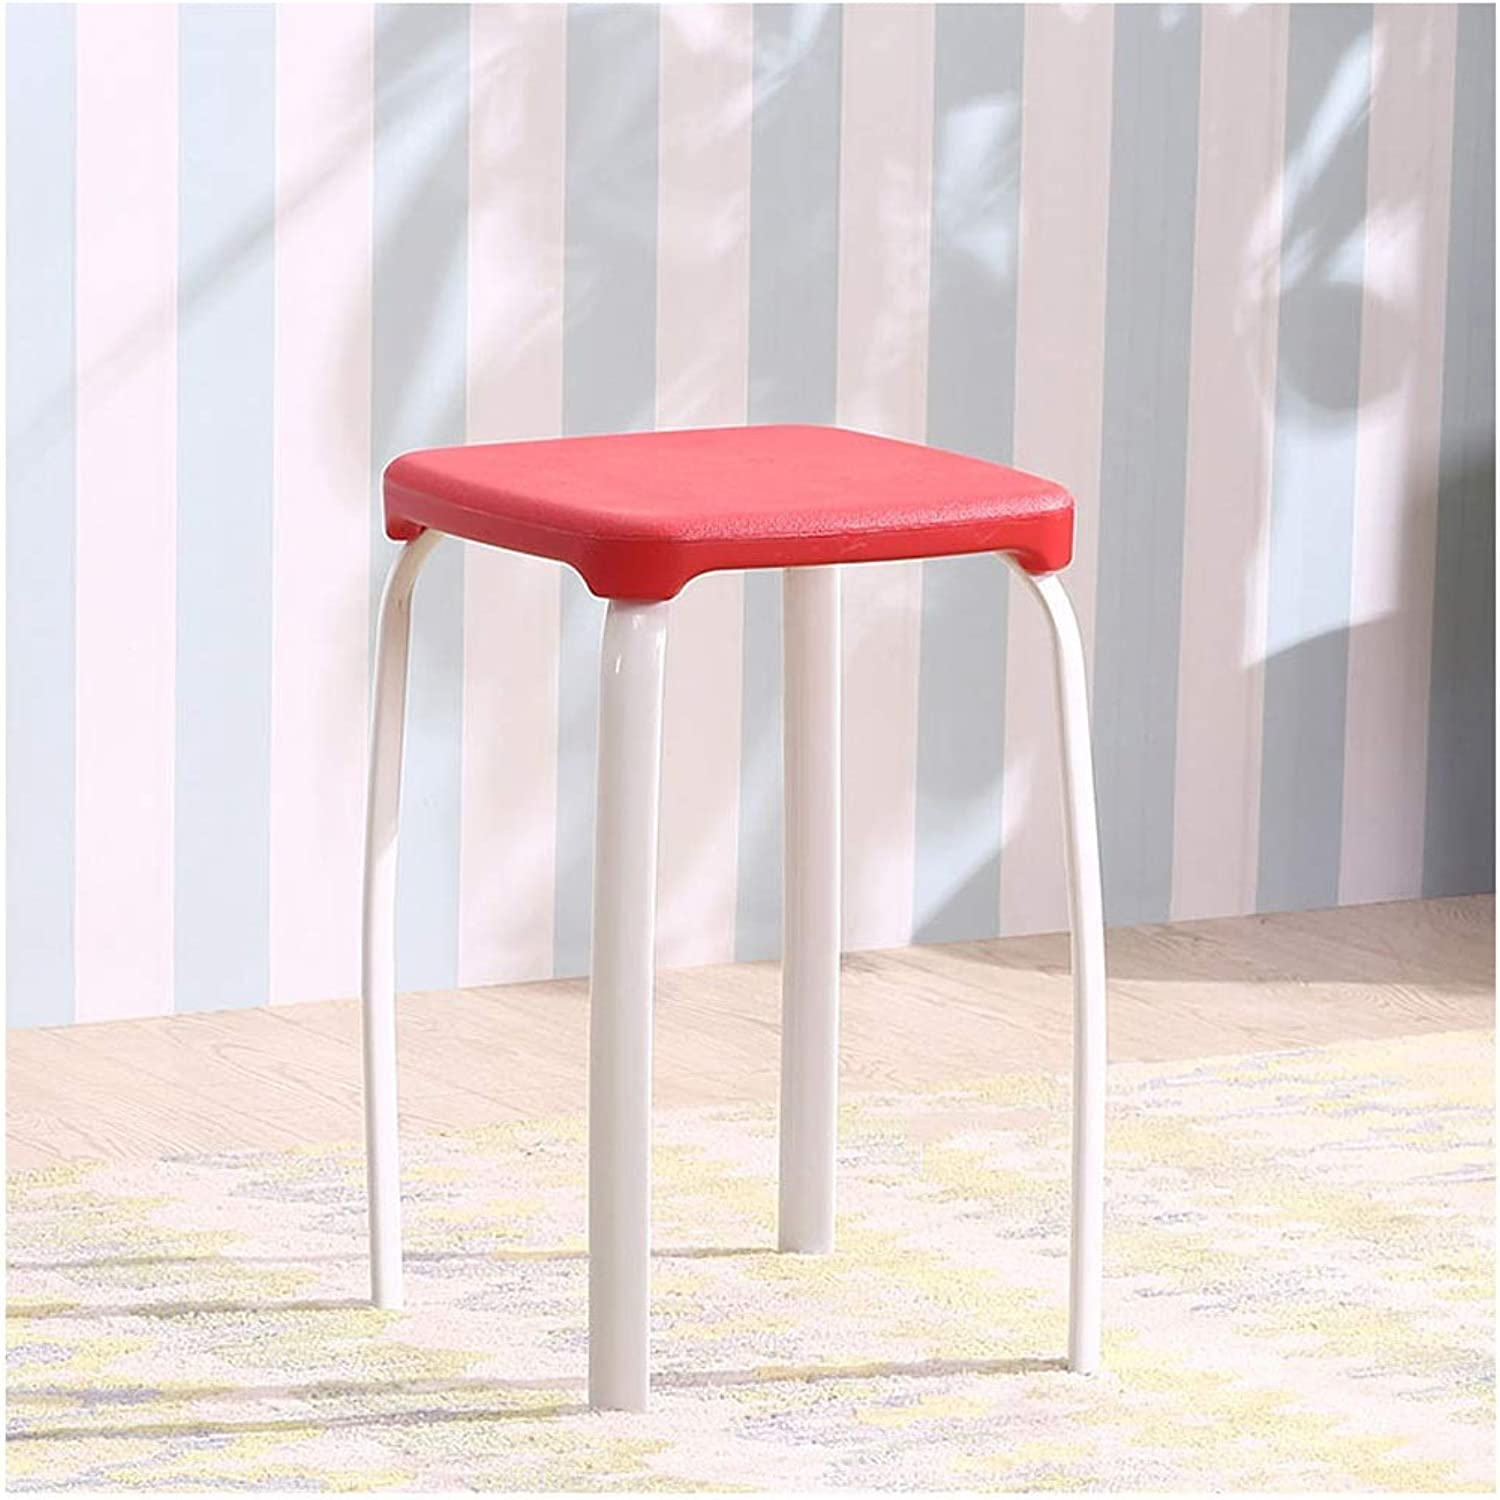 Plastic Square Stool, Stackable Adult Small Stool Nordic Style Breakfast Stool Modern Minimalist Dining Stool Dressing Stool Bar Stool,for Kitchen, Restaurant, Cafe, Bar (Size  29  29  45cm)